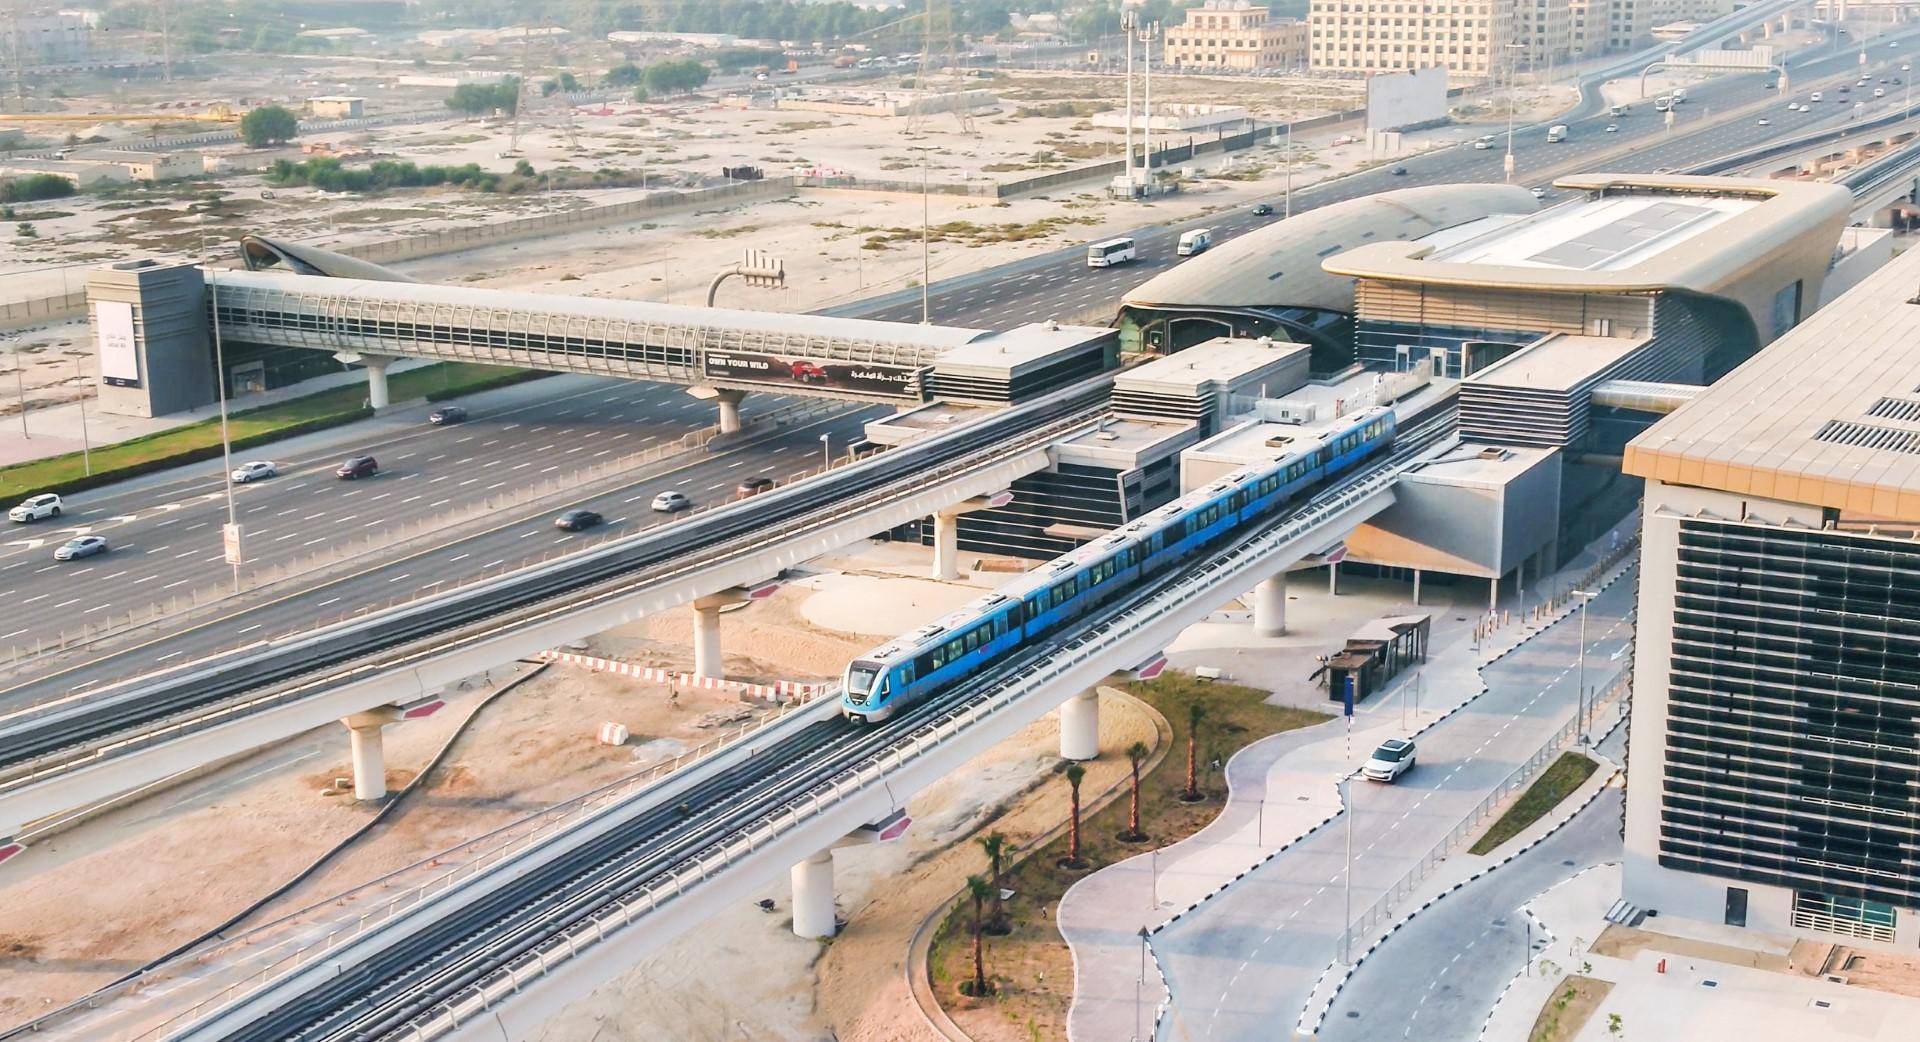 Expo 2020 Dubai: Projects worth Dh15 billion to offer quick mobility